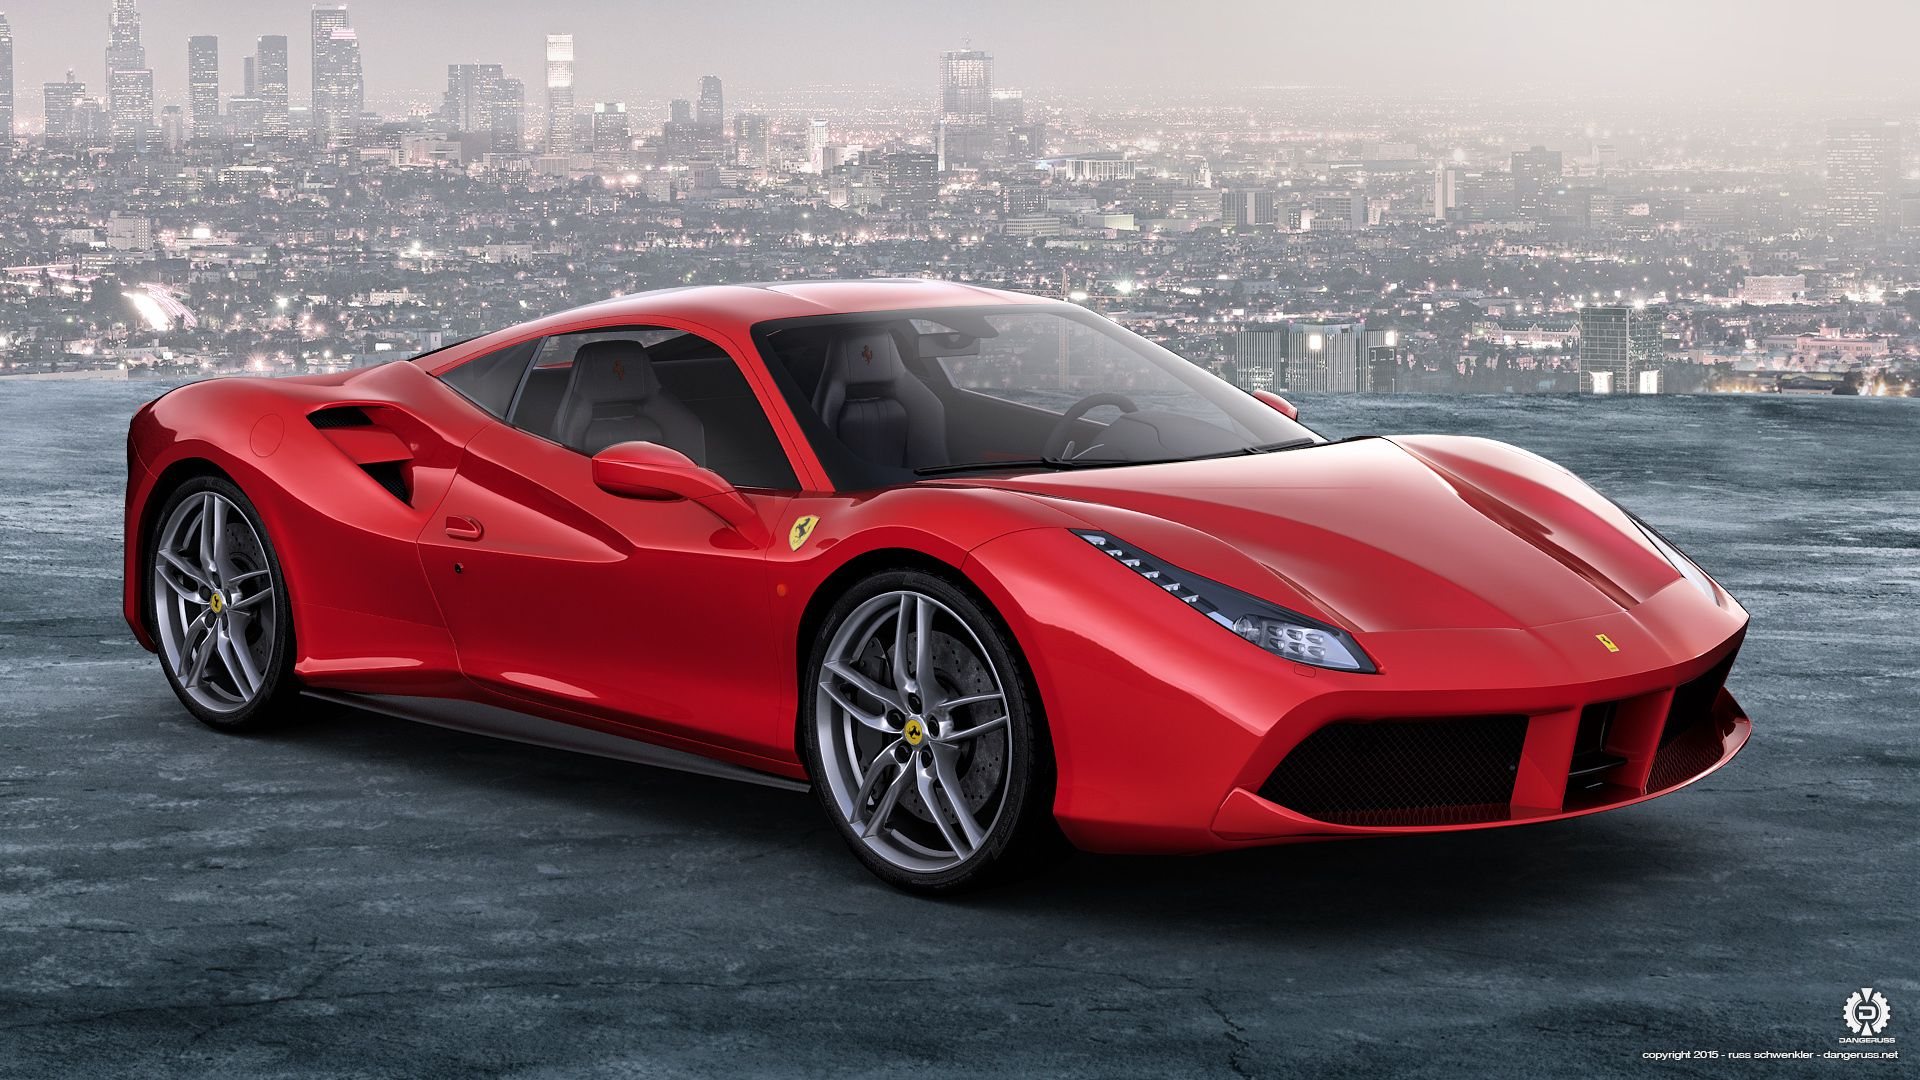 Car Wallpaper Ferrari   Car New Wallpaper Free Images August 15 2017 At  Free Porn Cams Xxx Online 500 Girls Sexy Keywords: Sex Girls Cum Video Milf  Big Ass ...